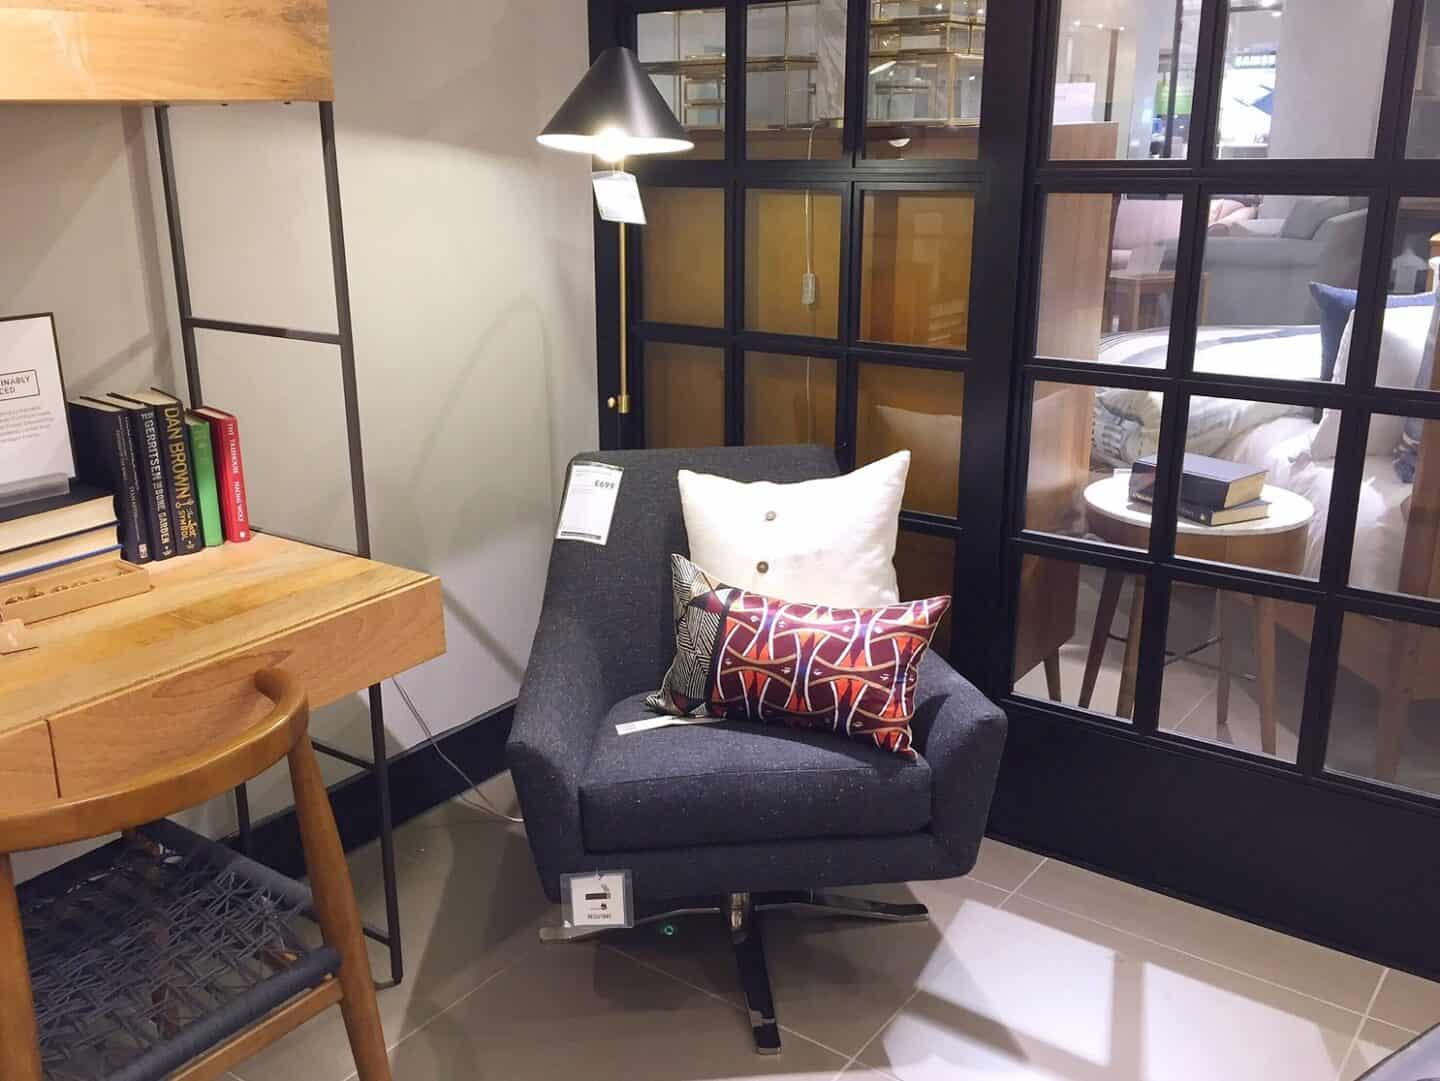 West Elm reading nook